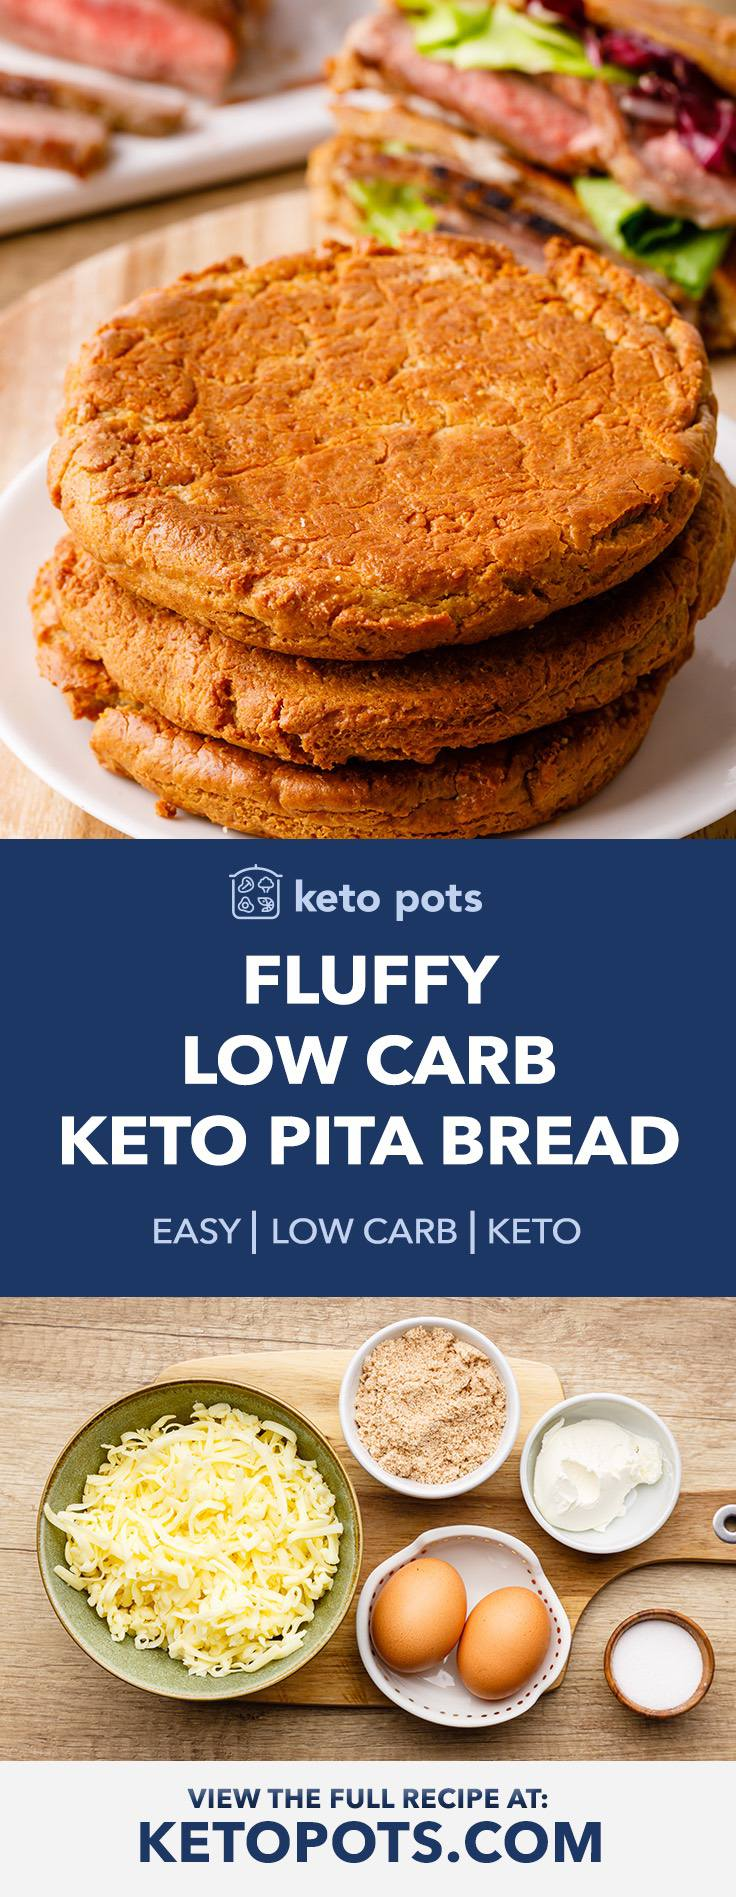 Low Carb (And Fluffy) Keto Pita Bread